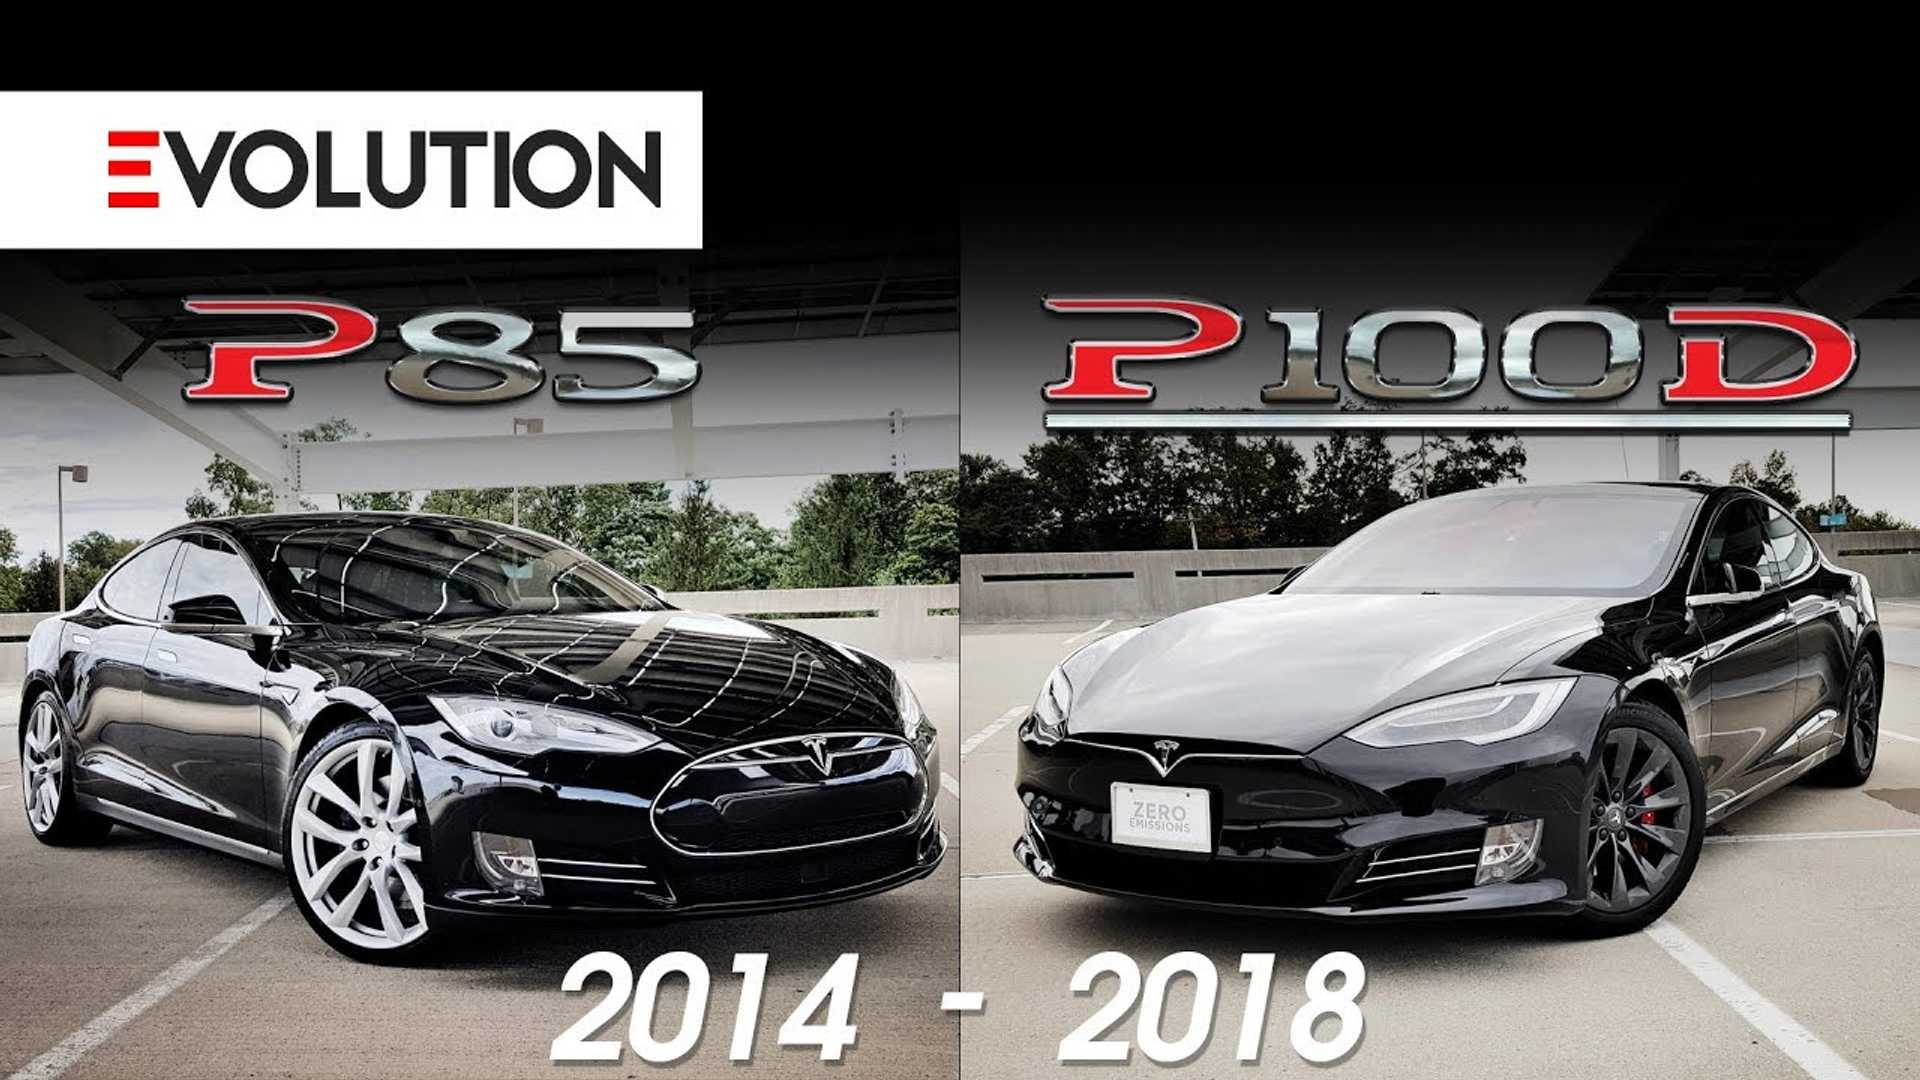 Compare An Old Tesla Model S P85 To A New P100d